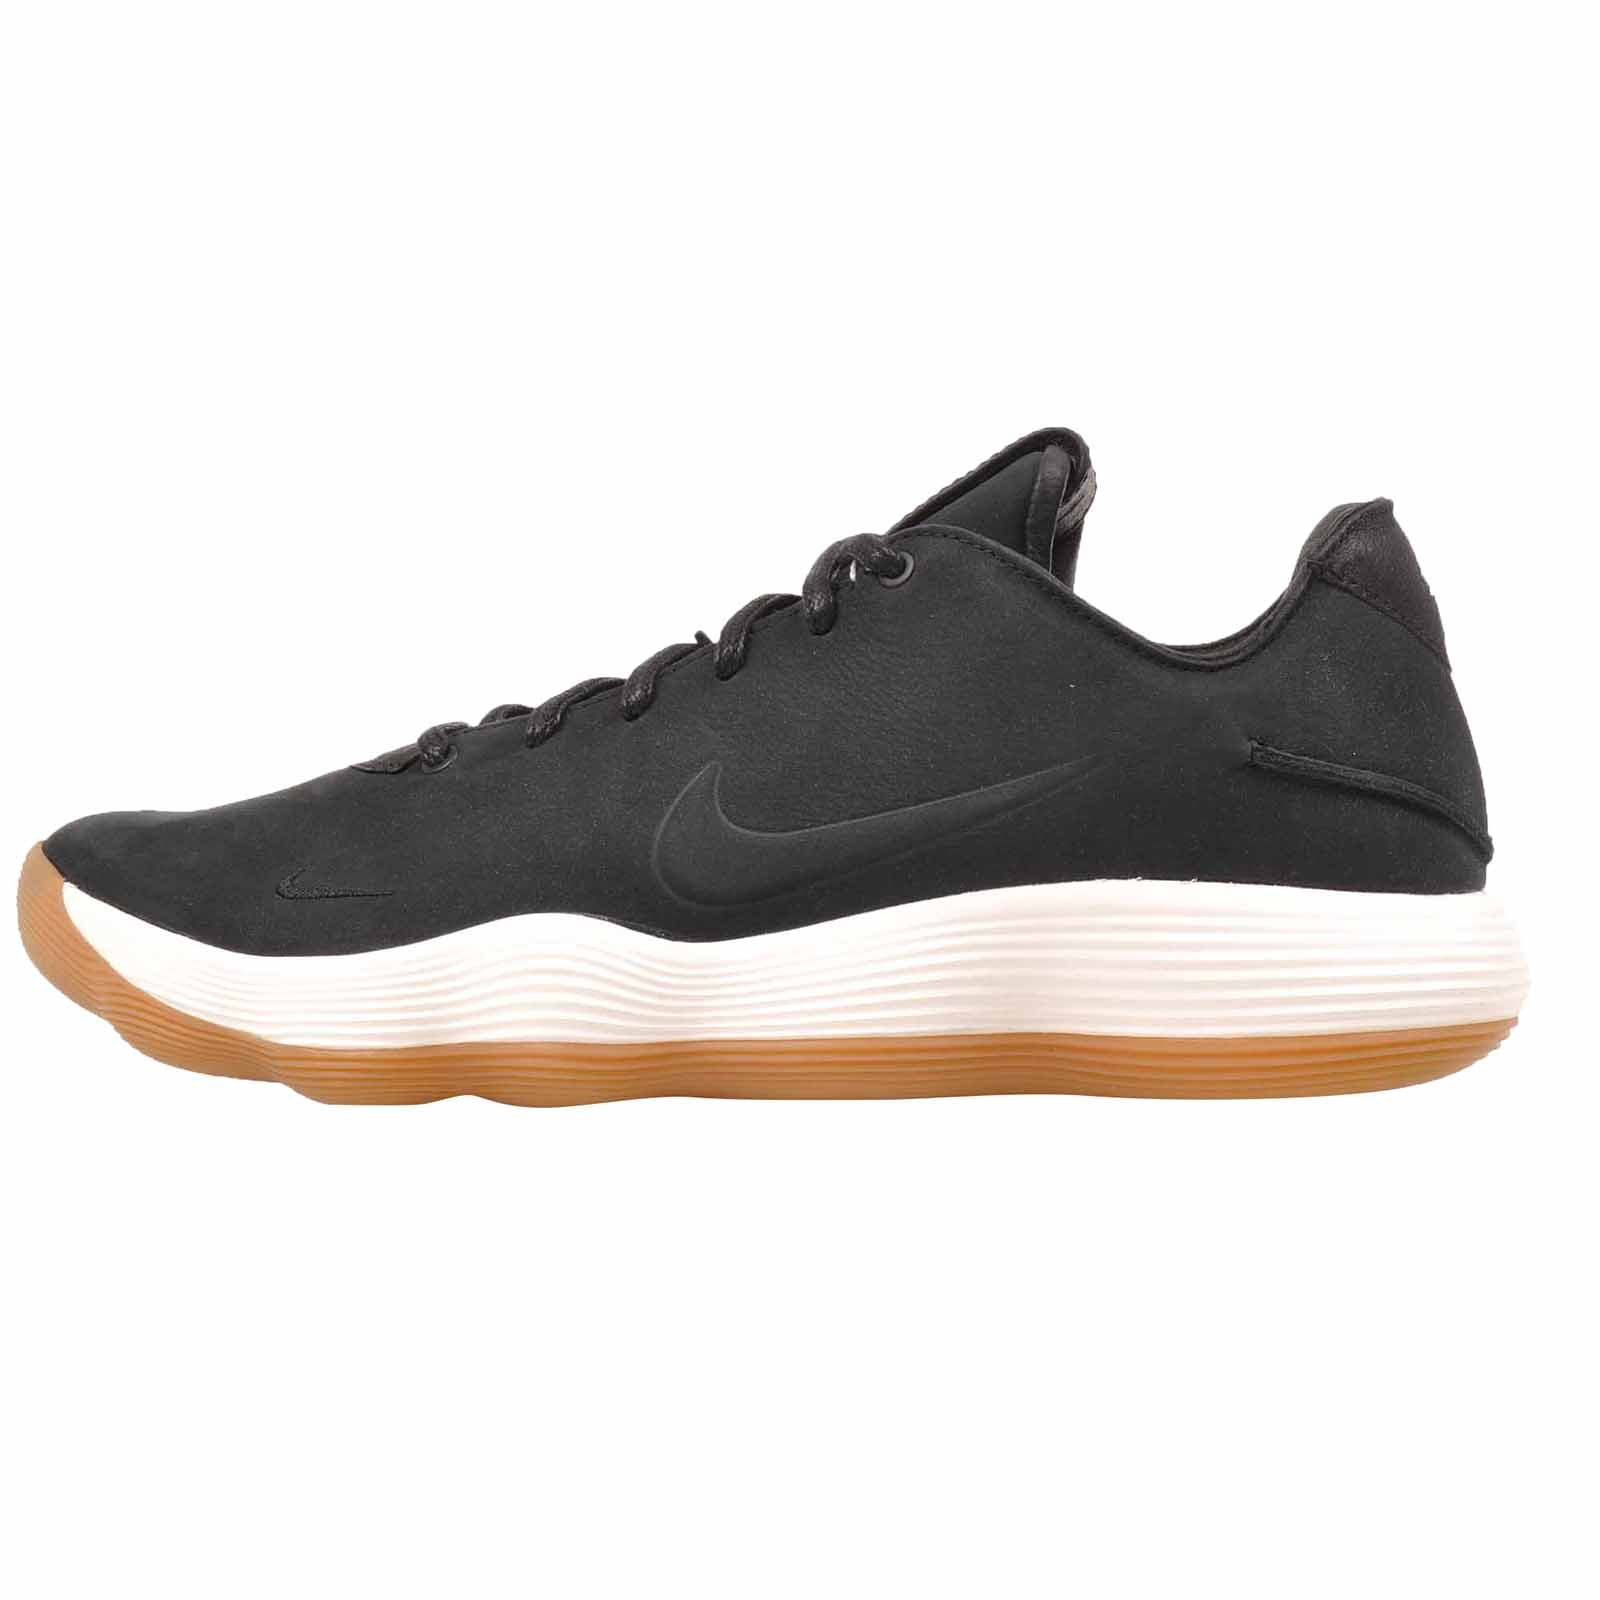 retail prices b4035 adc98 Get Quotations · NIKE Men s Hyperdunk 2017 Low Lmtd, Multi-Color Multi-Color